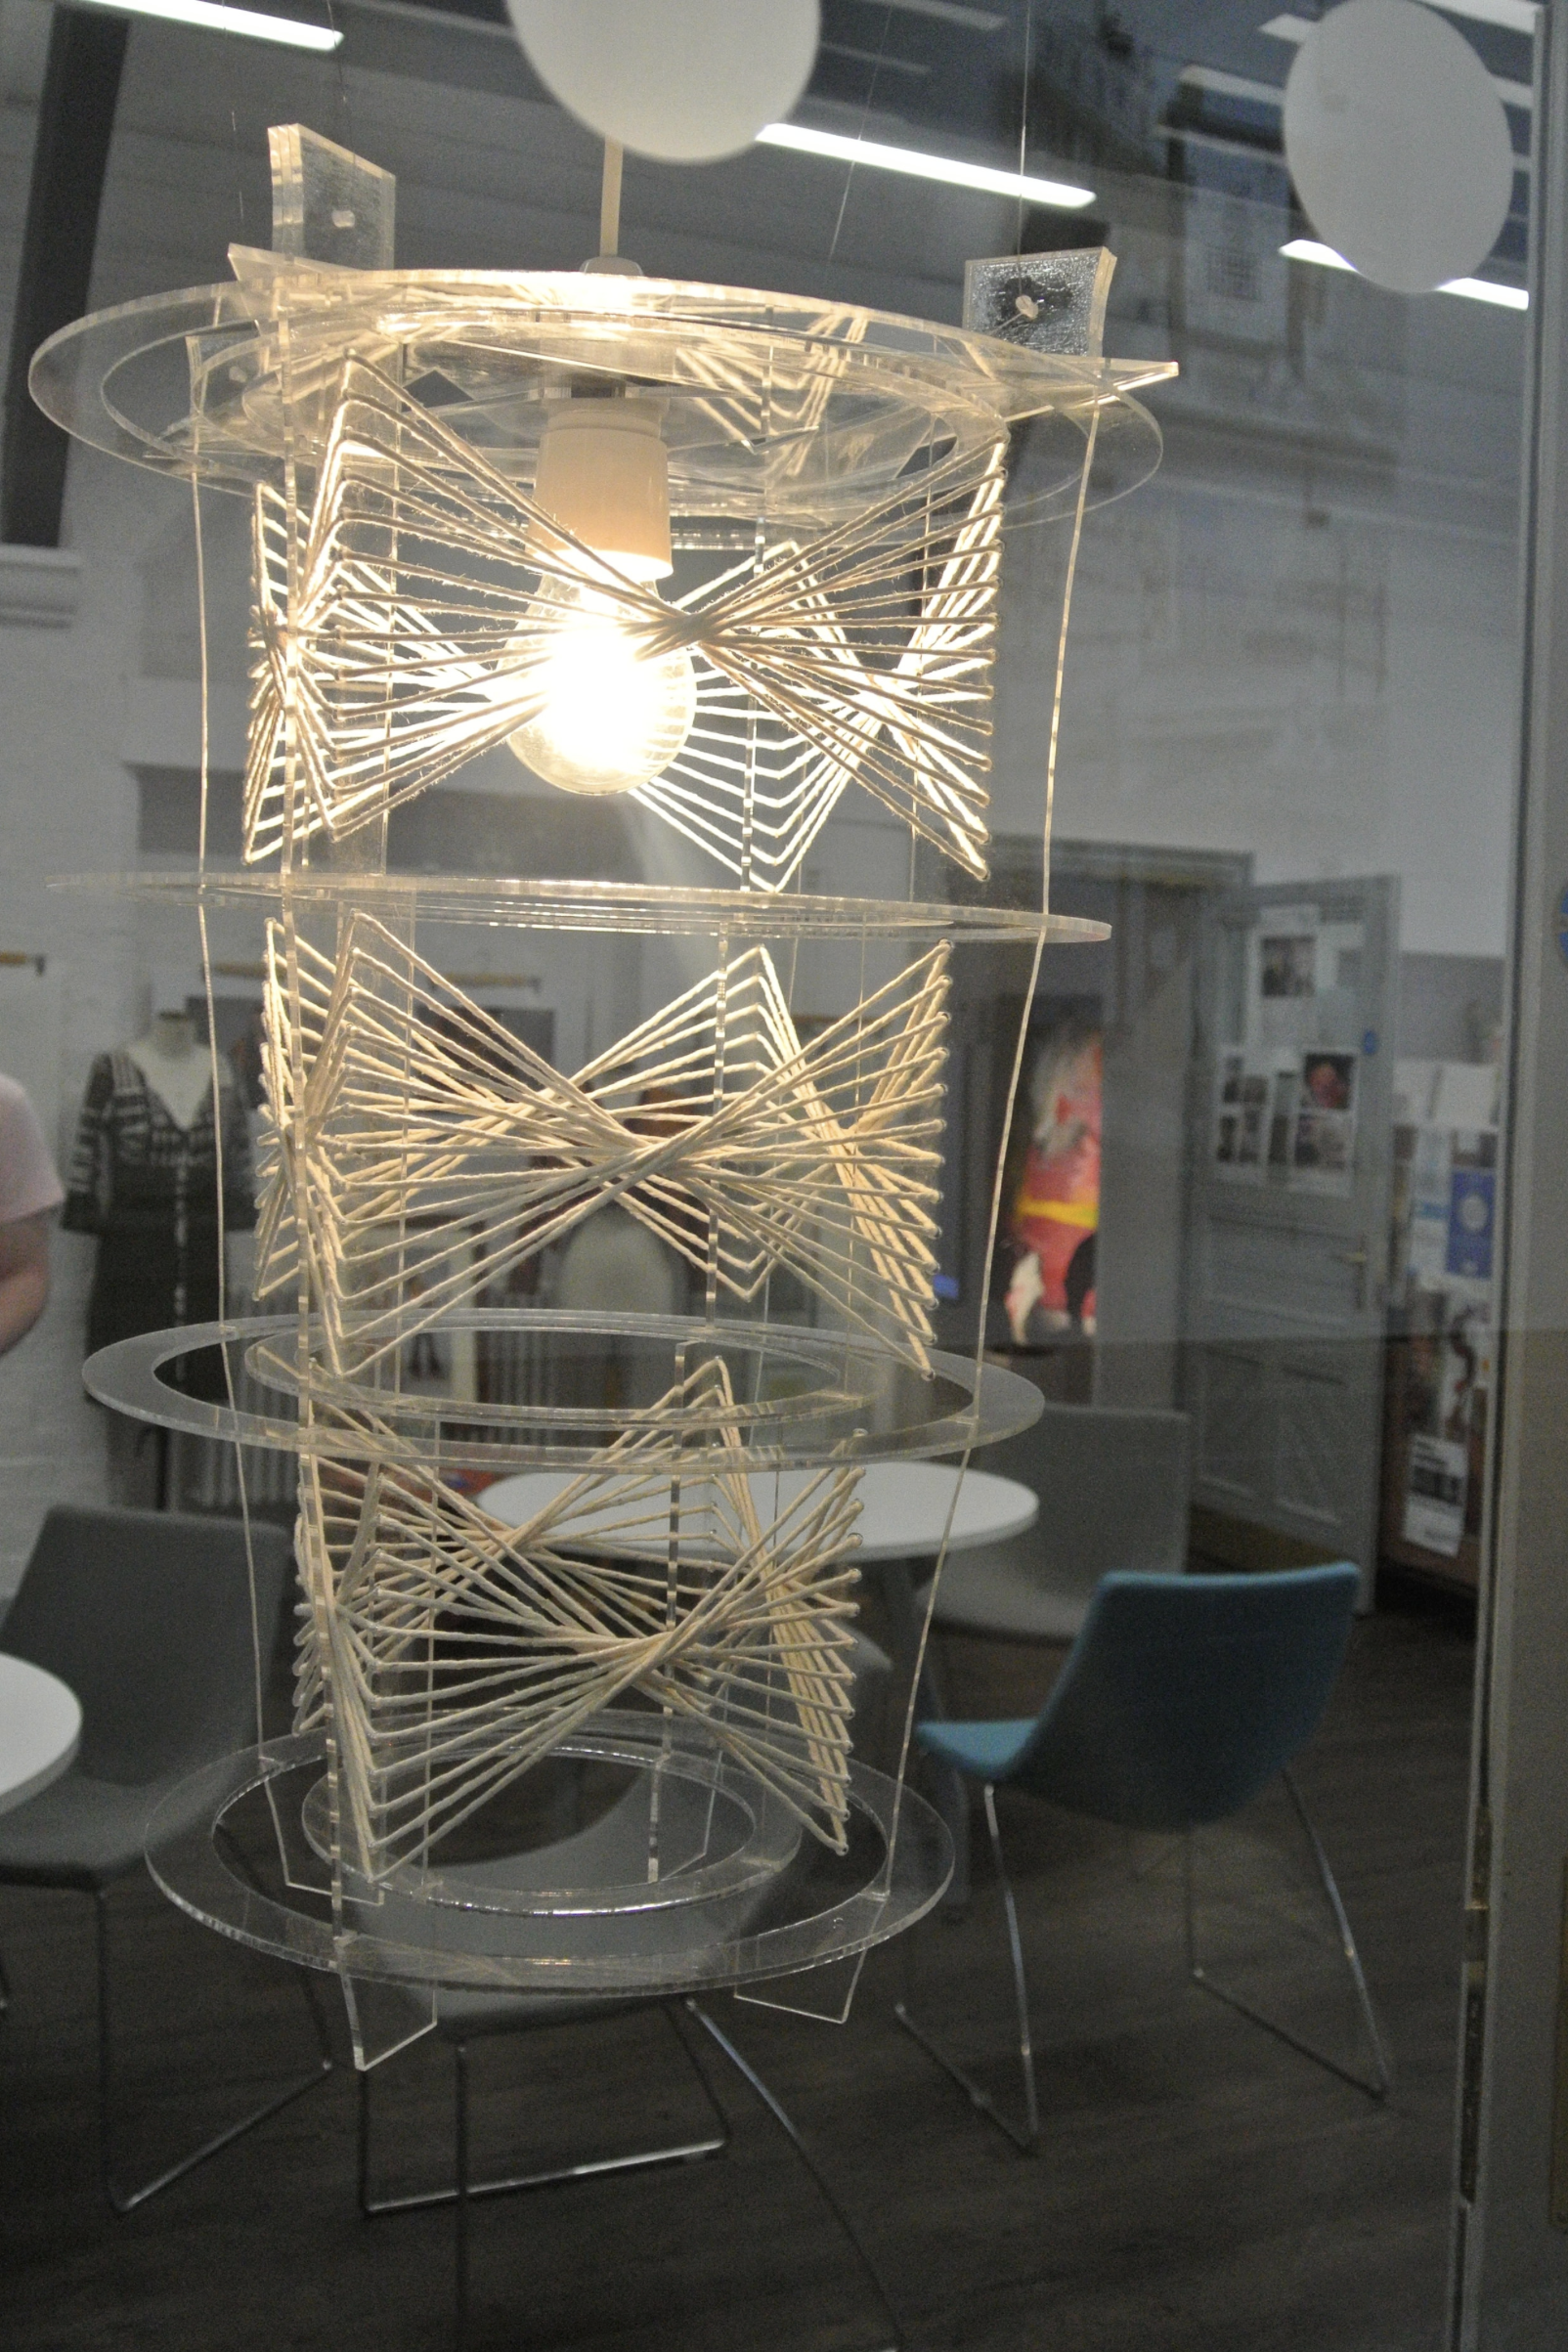 Isobel Wallace, L3 yr 1 Art & Design - SCULPTURAL CHANDELIER MADE FROM UNDYED STRING AND CLEAR ACRYLICFUTURE PLANS: CONTINUING ON TO YEAR 2 OF ART AND DESIGN LEVEL3 AT CHESTERFIELD COLLEGE